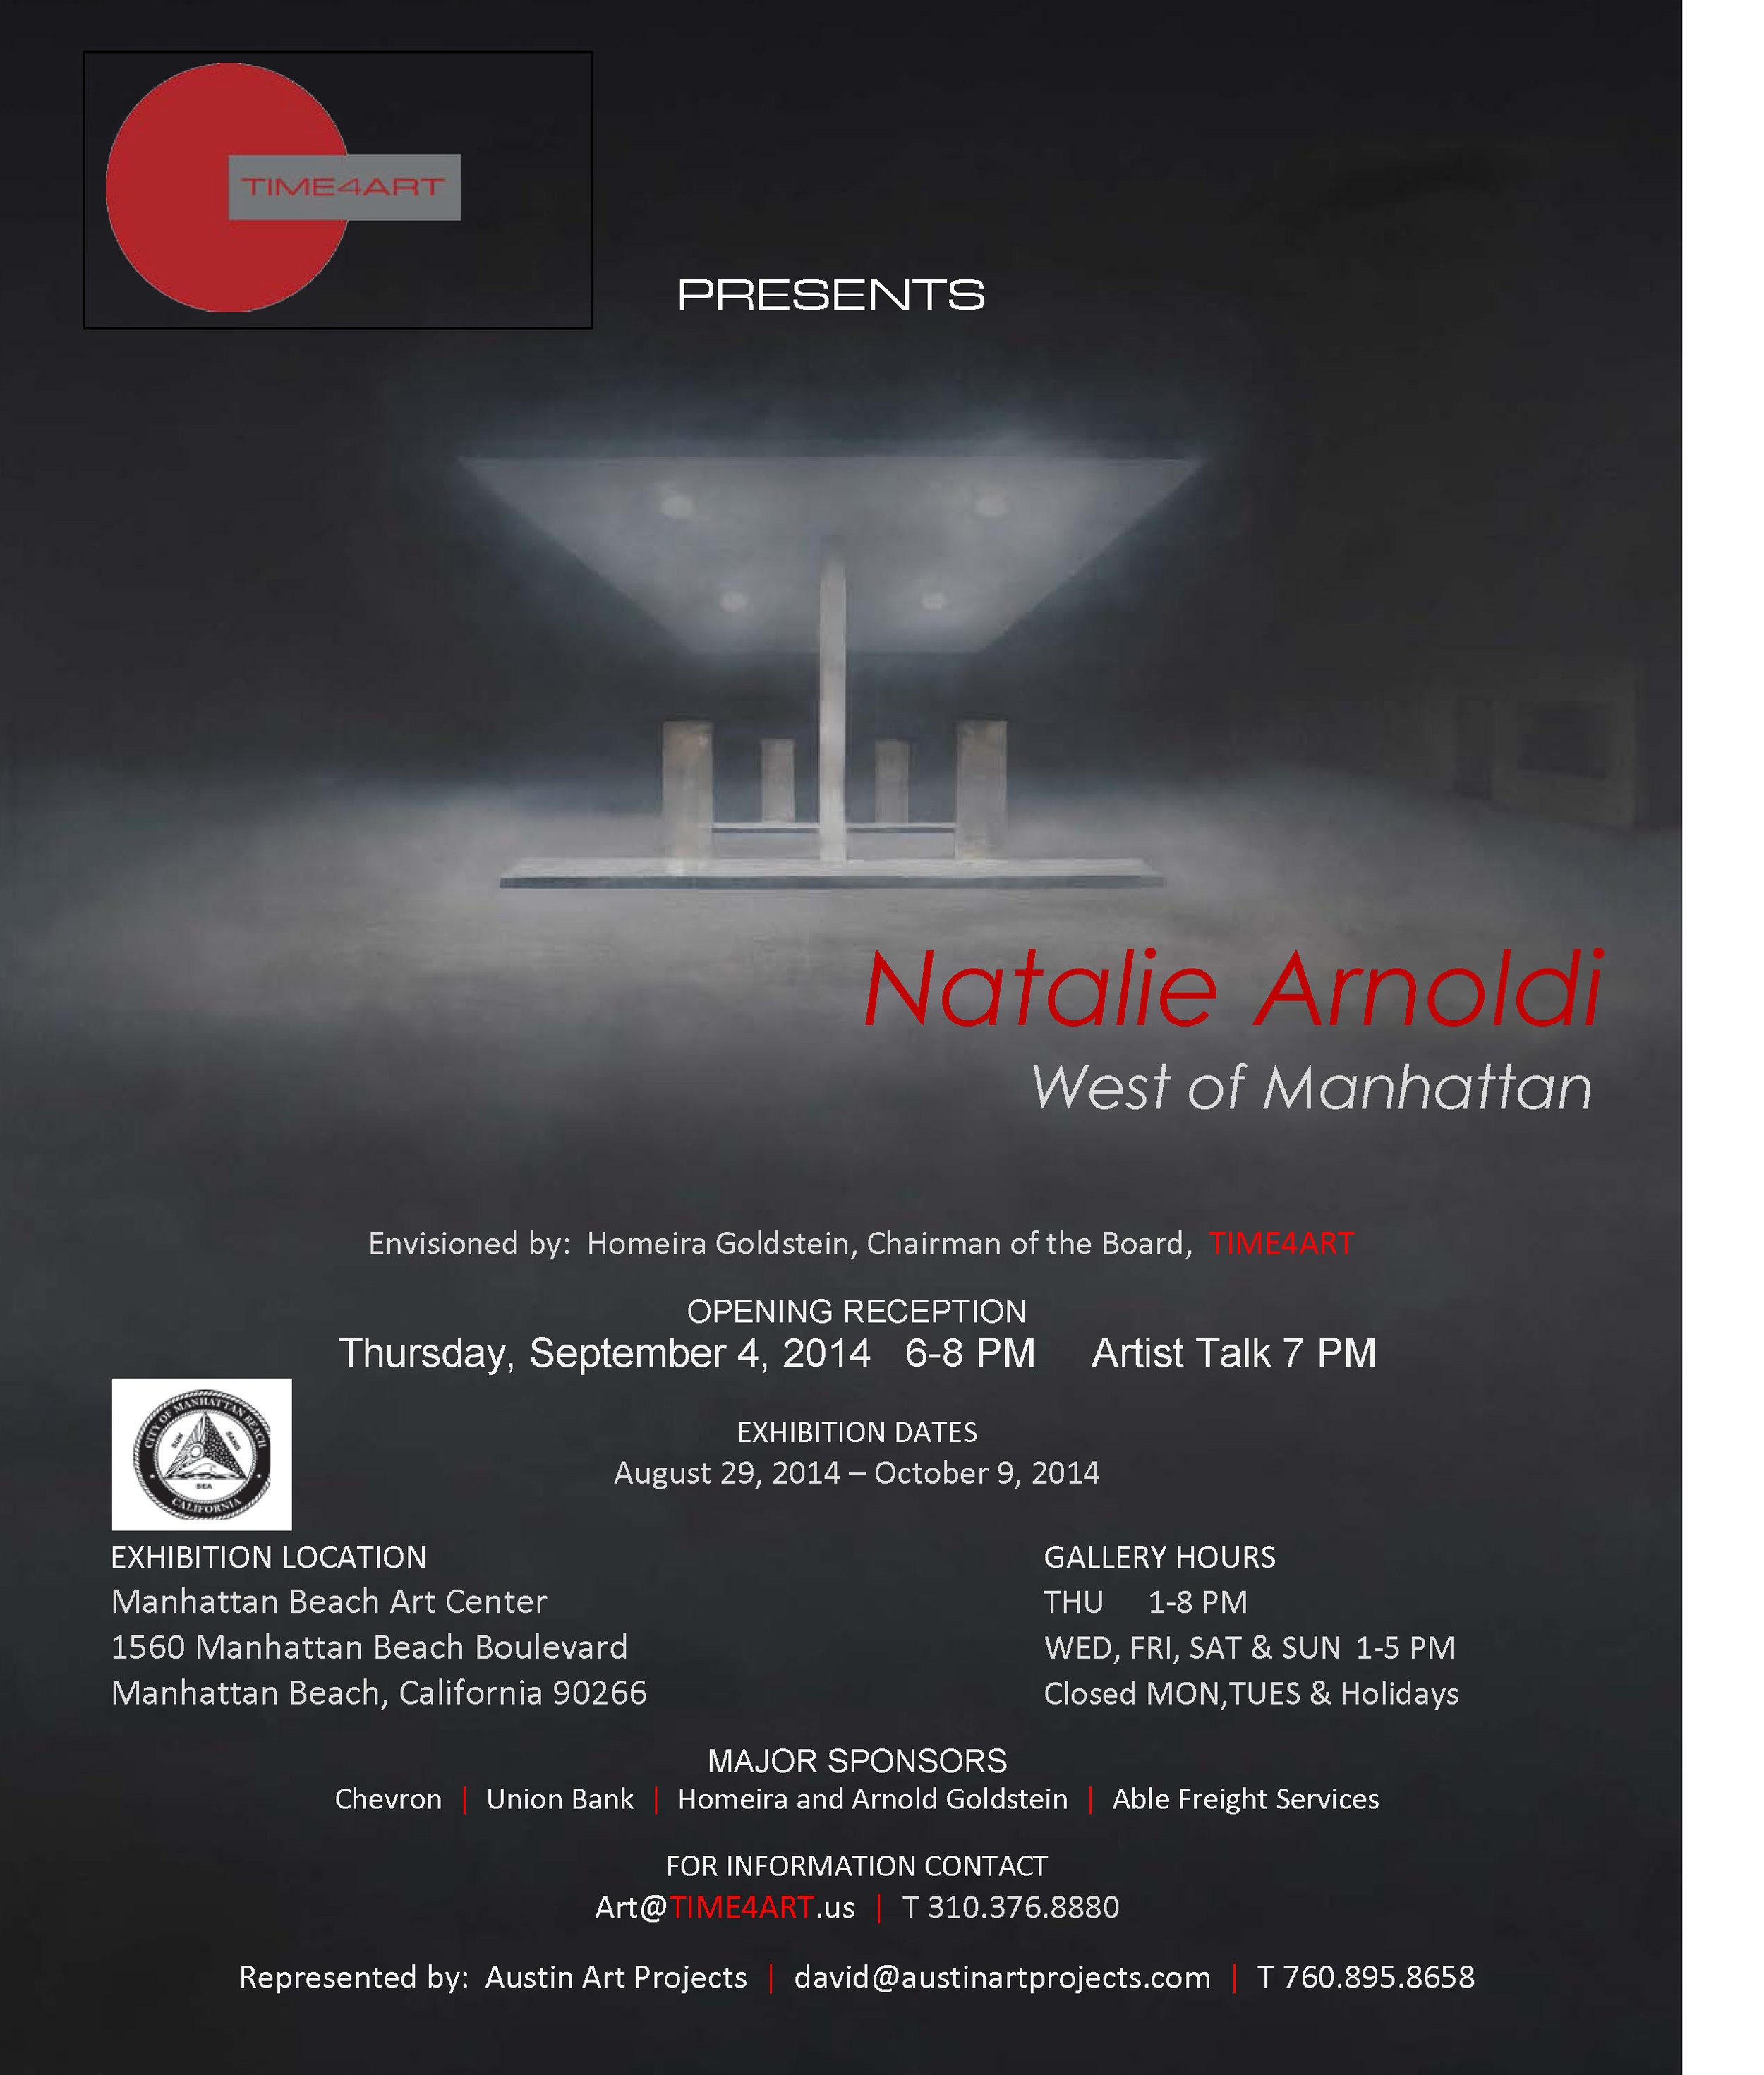 1409_TIME4ART_WESTOFMANHATTAN_NATALIEARNOLDI_INVITATION_citylogo_09-04-14_FINAL.jpg